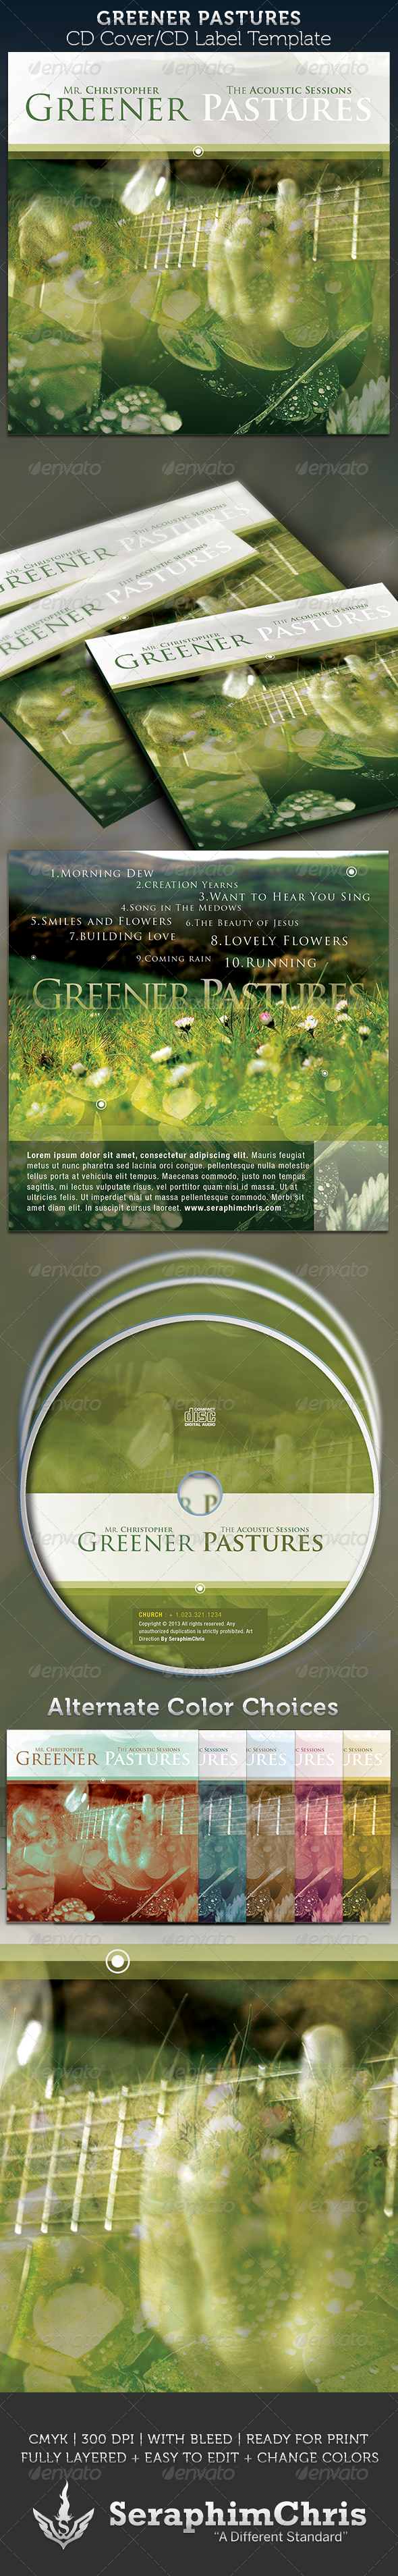 Greener Pastures: CD Cover Artwork Template - CD & DVD Artwork Print Templates